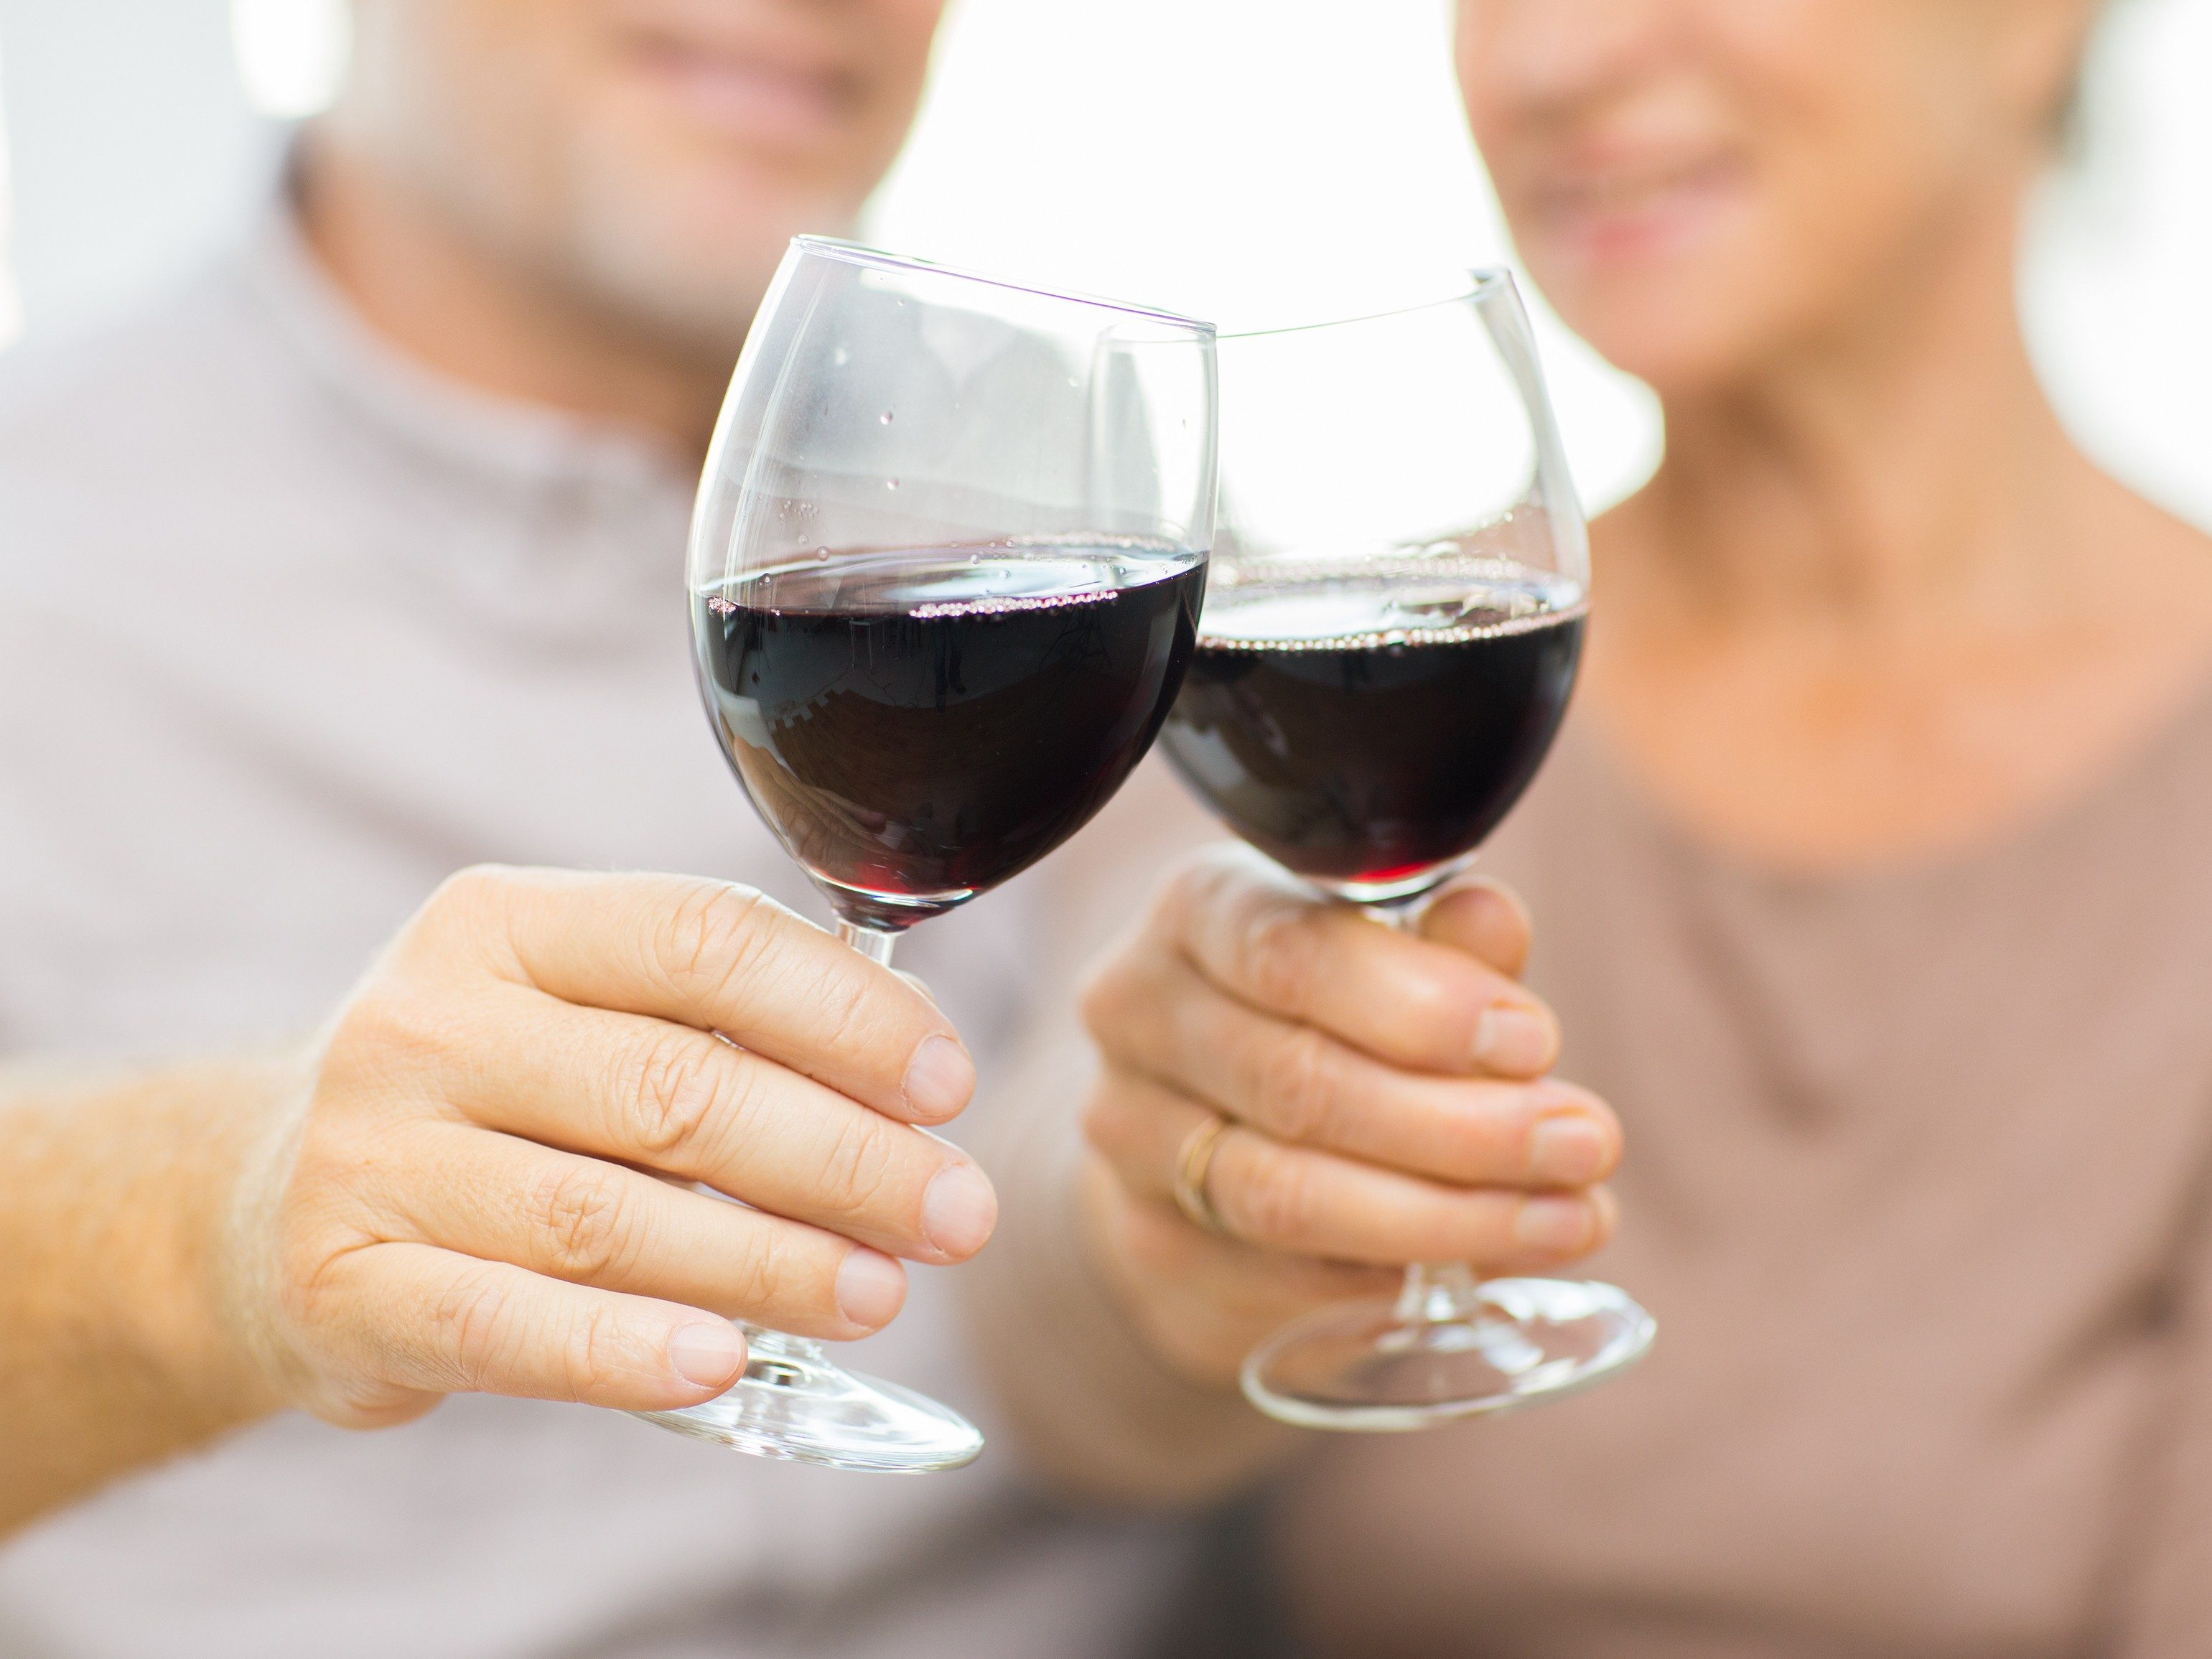 6. Prevent memory loss by reducing your alcohol consumption